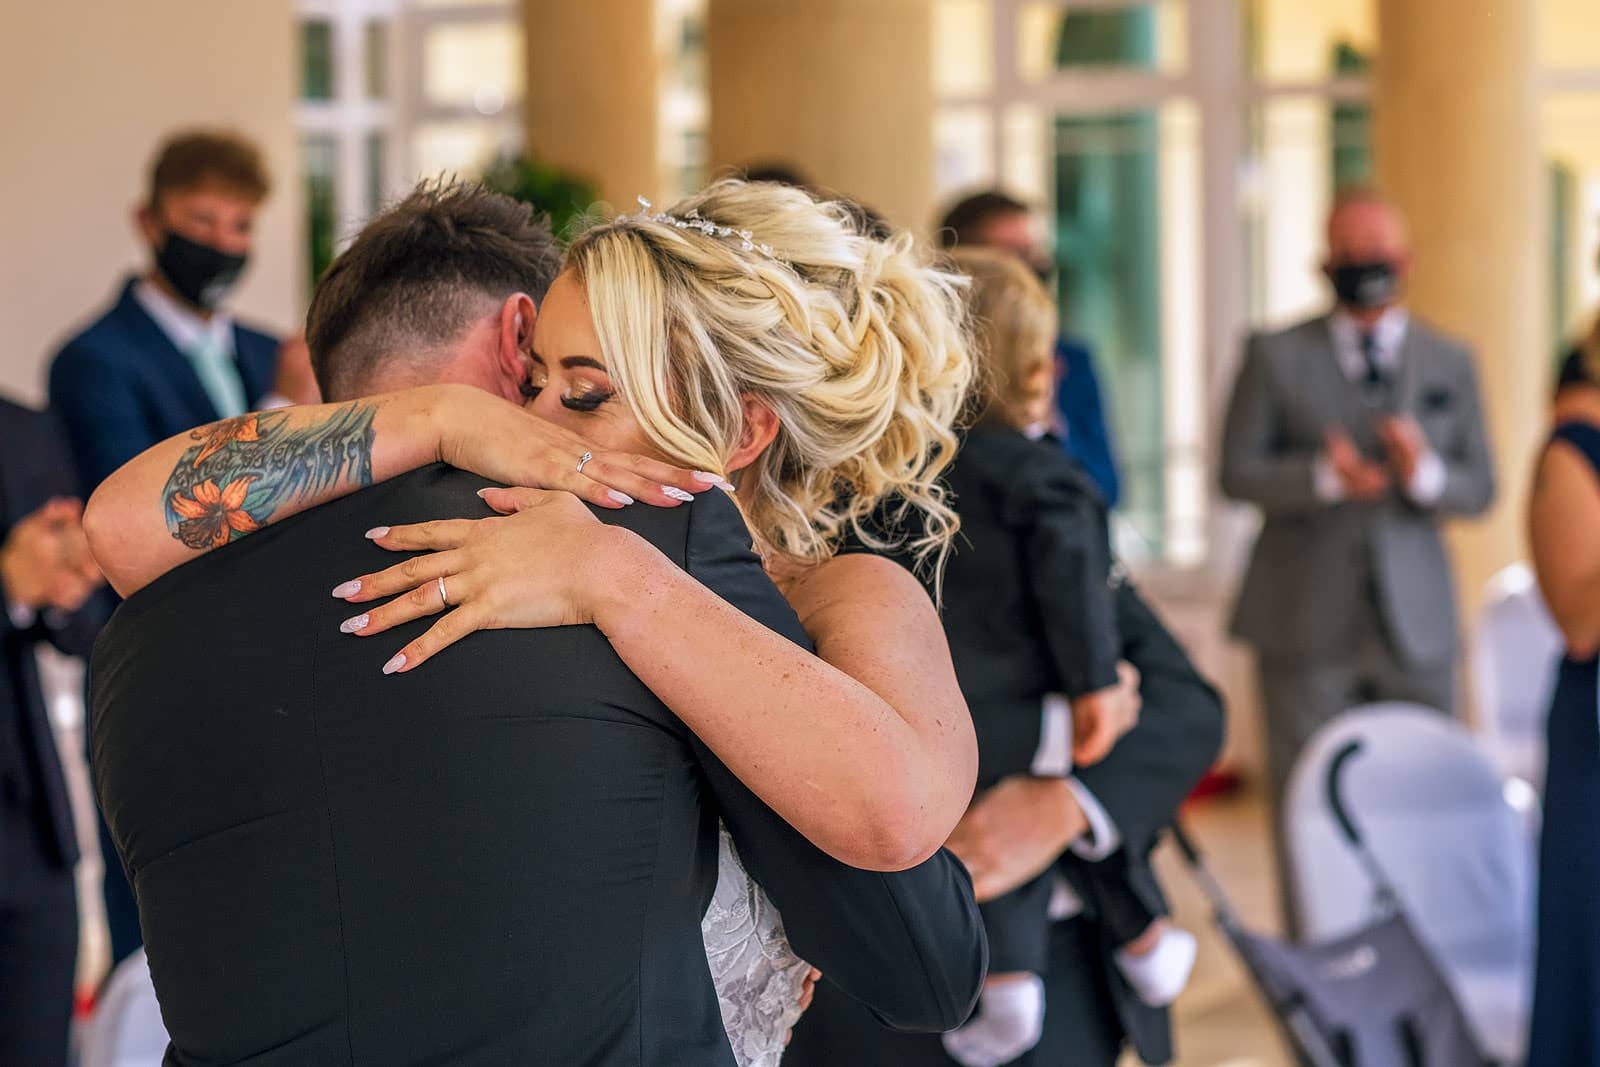 Emotional wedding at the Vale resort